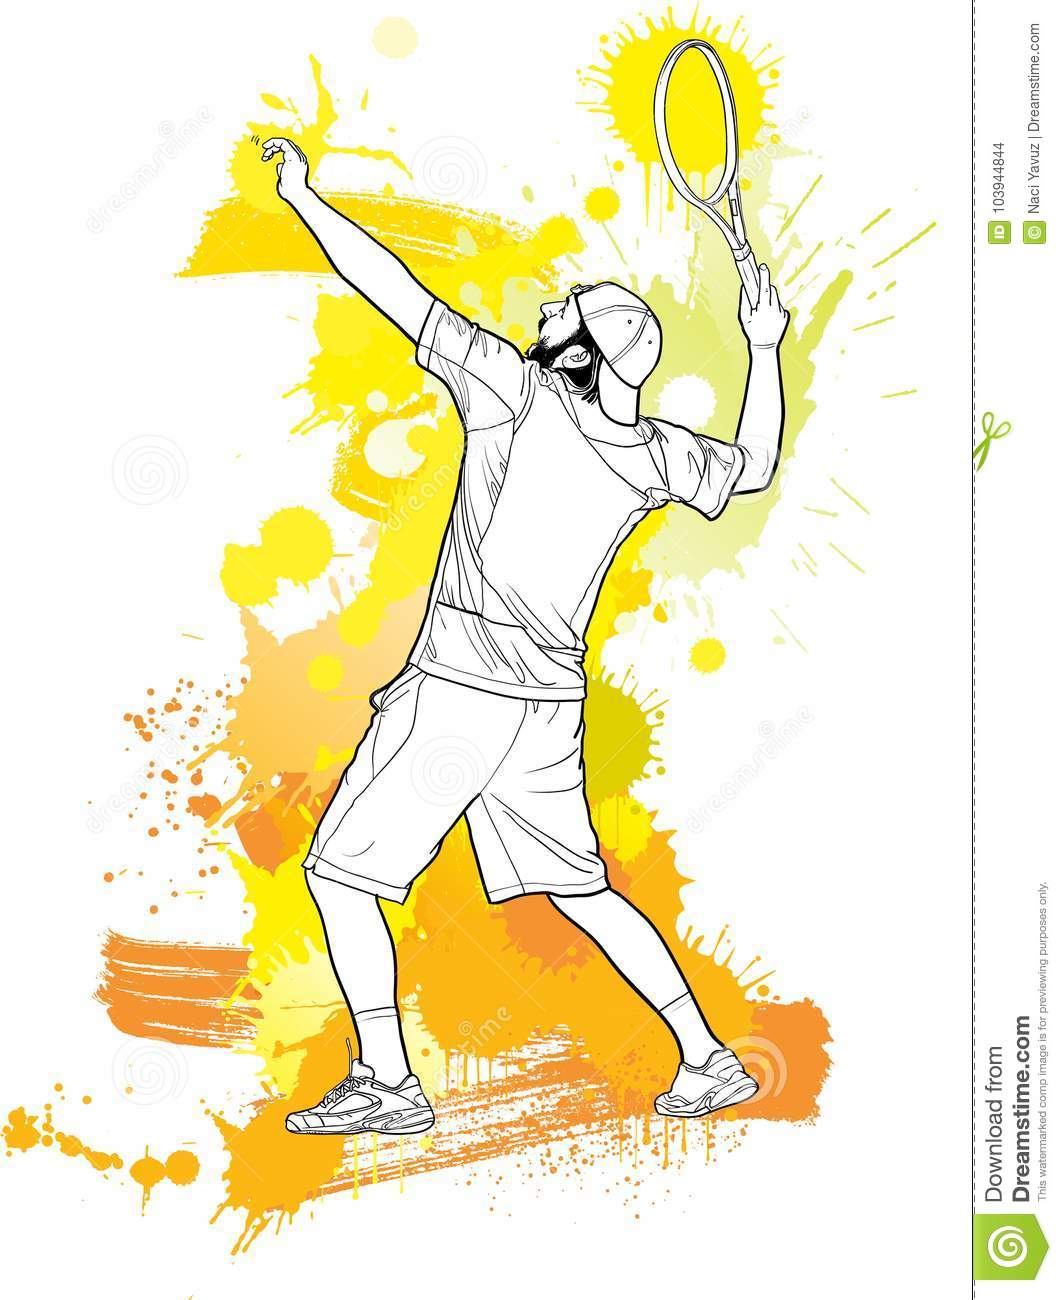 Abstract Tennis Player Clip Art